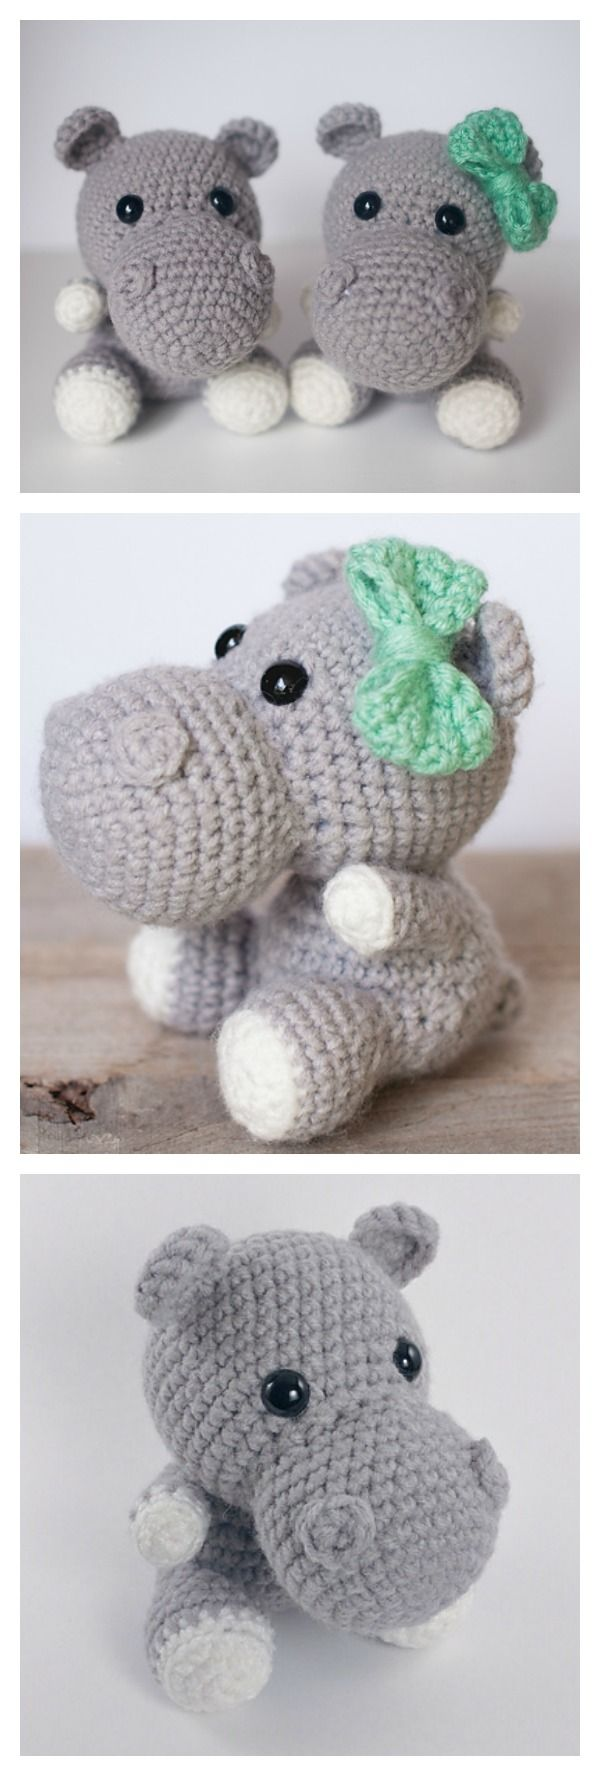 Cute Hippo Amigurumi Crochet Patterns | Baby kind, Babys und Häkeln